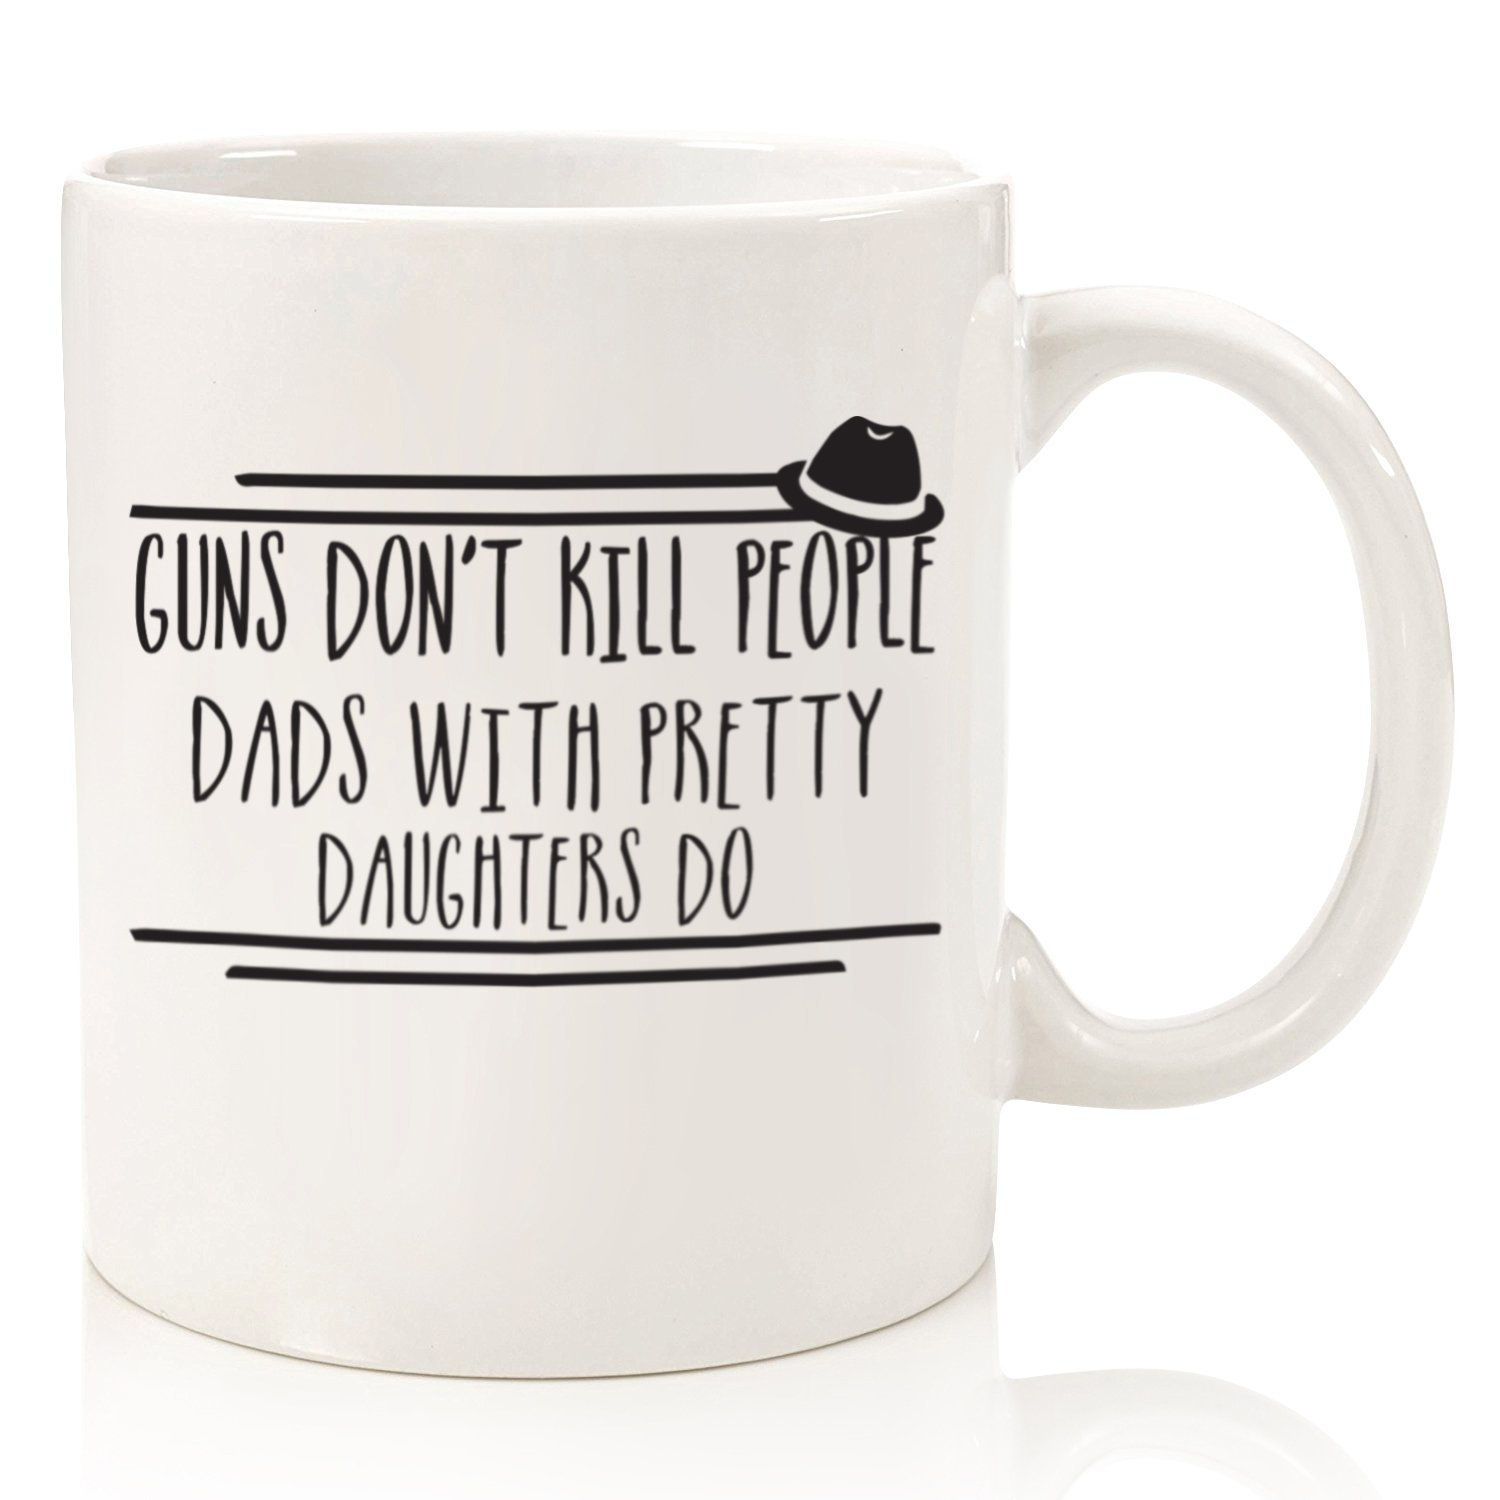 Guns Don't Kill People Dads With Pretty Daughters Do Funny Coffee Mug - Great Birthday Gift Idea For a Dad - Humorous Valentines Day Present For Fathers From Wife, Son, or Daughter